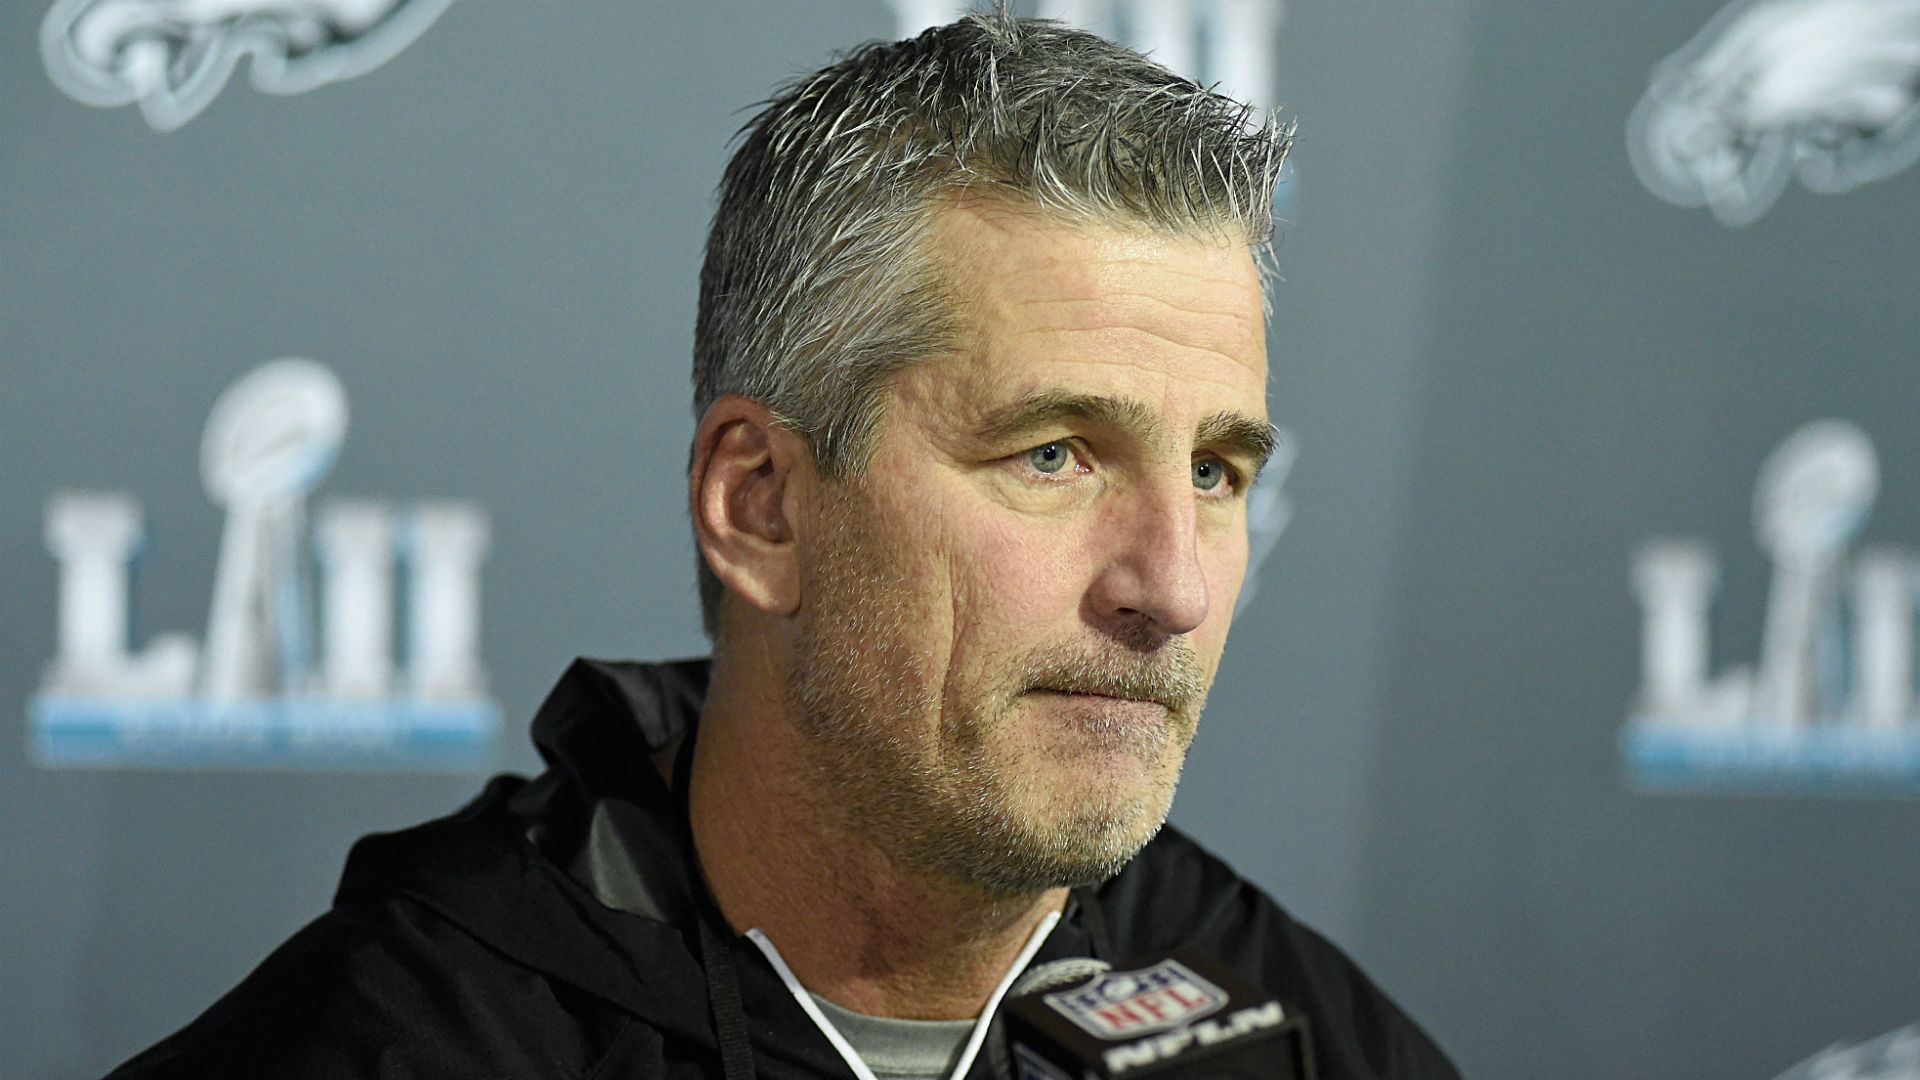 Eagles offensive coordinator Frank Reich to become the Indianapolis Colts head coach